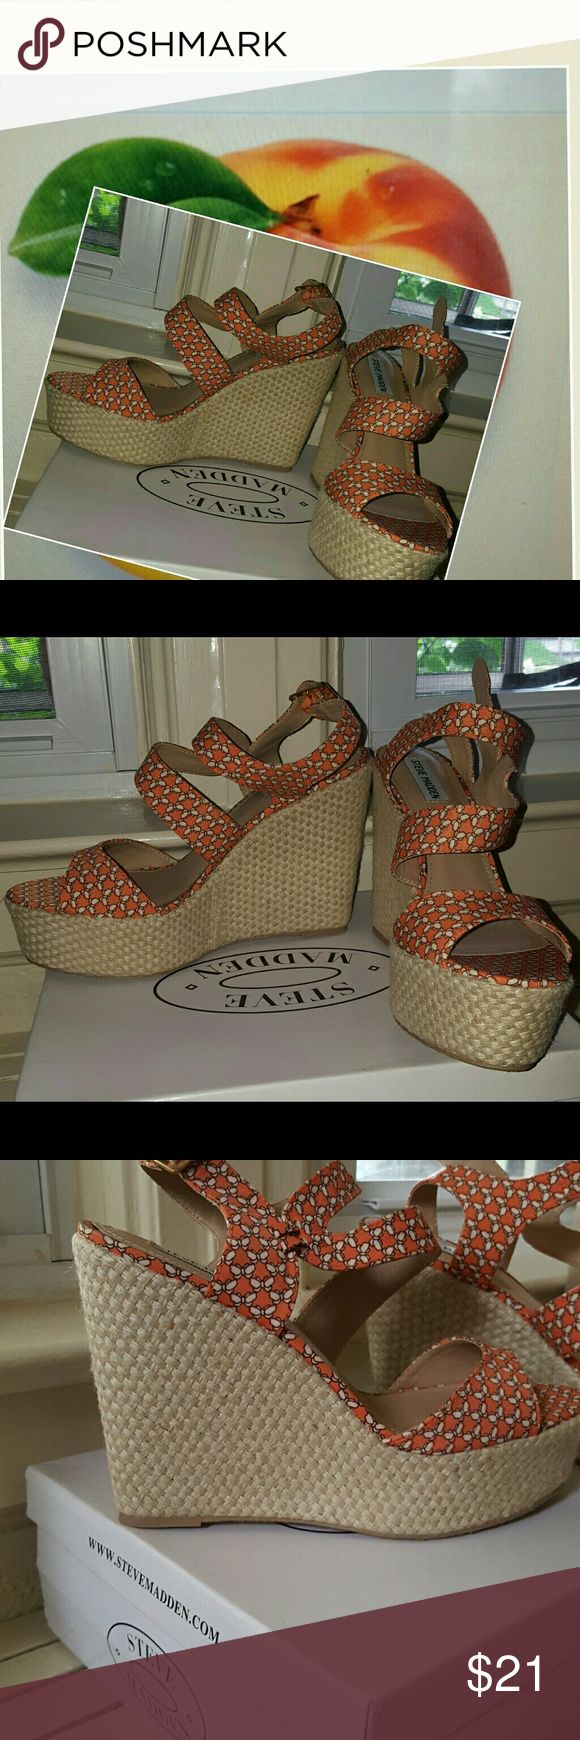 New Steve Madden Georgia Peach wedges 9.5 FINAL Brand new in box. Rubber sole. The kind of print could really wear with anything. Which is 4 inches. True to size no bundling at sale price Steve Madden Shoes Sandals